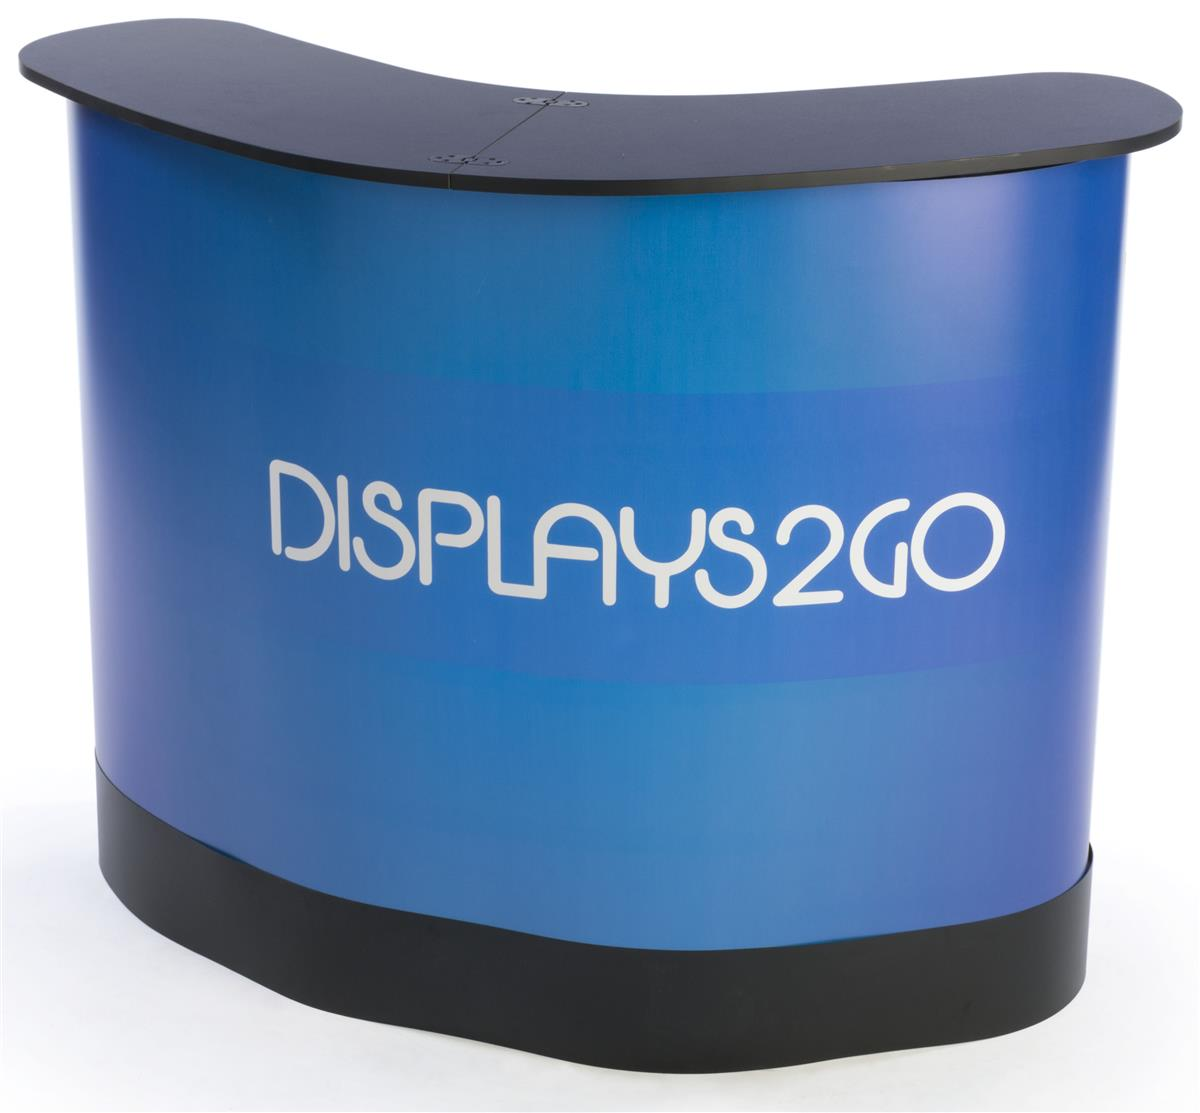 Exhibition Booth Accessories : Trade show displays & supplies booths banners & table covers